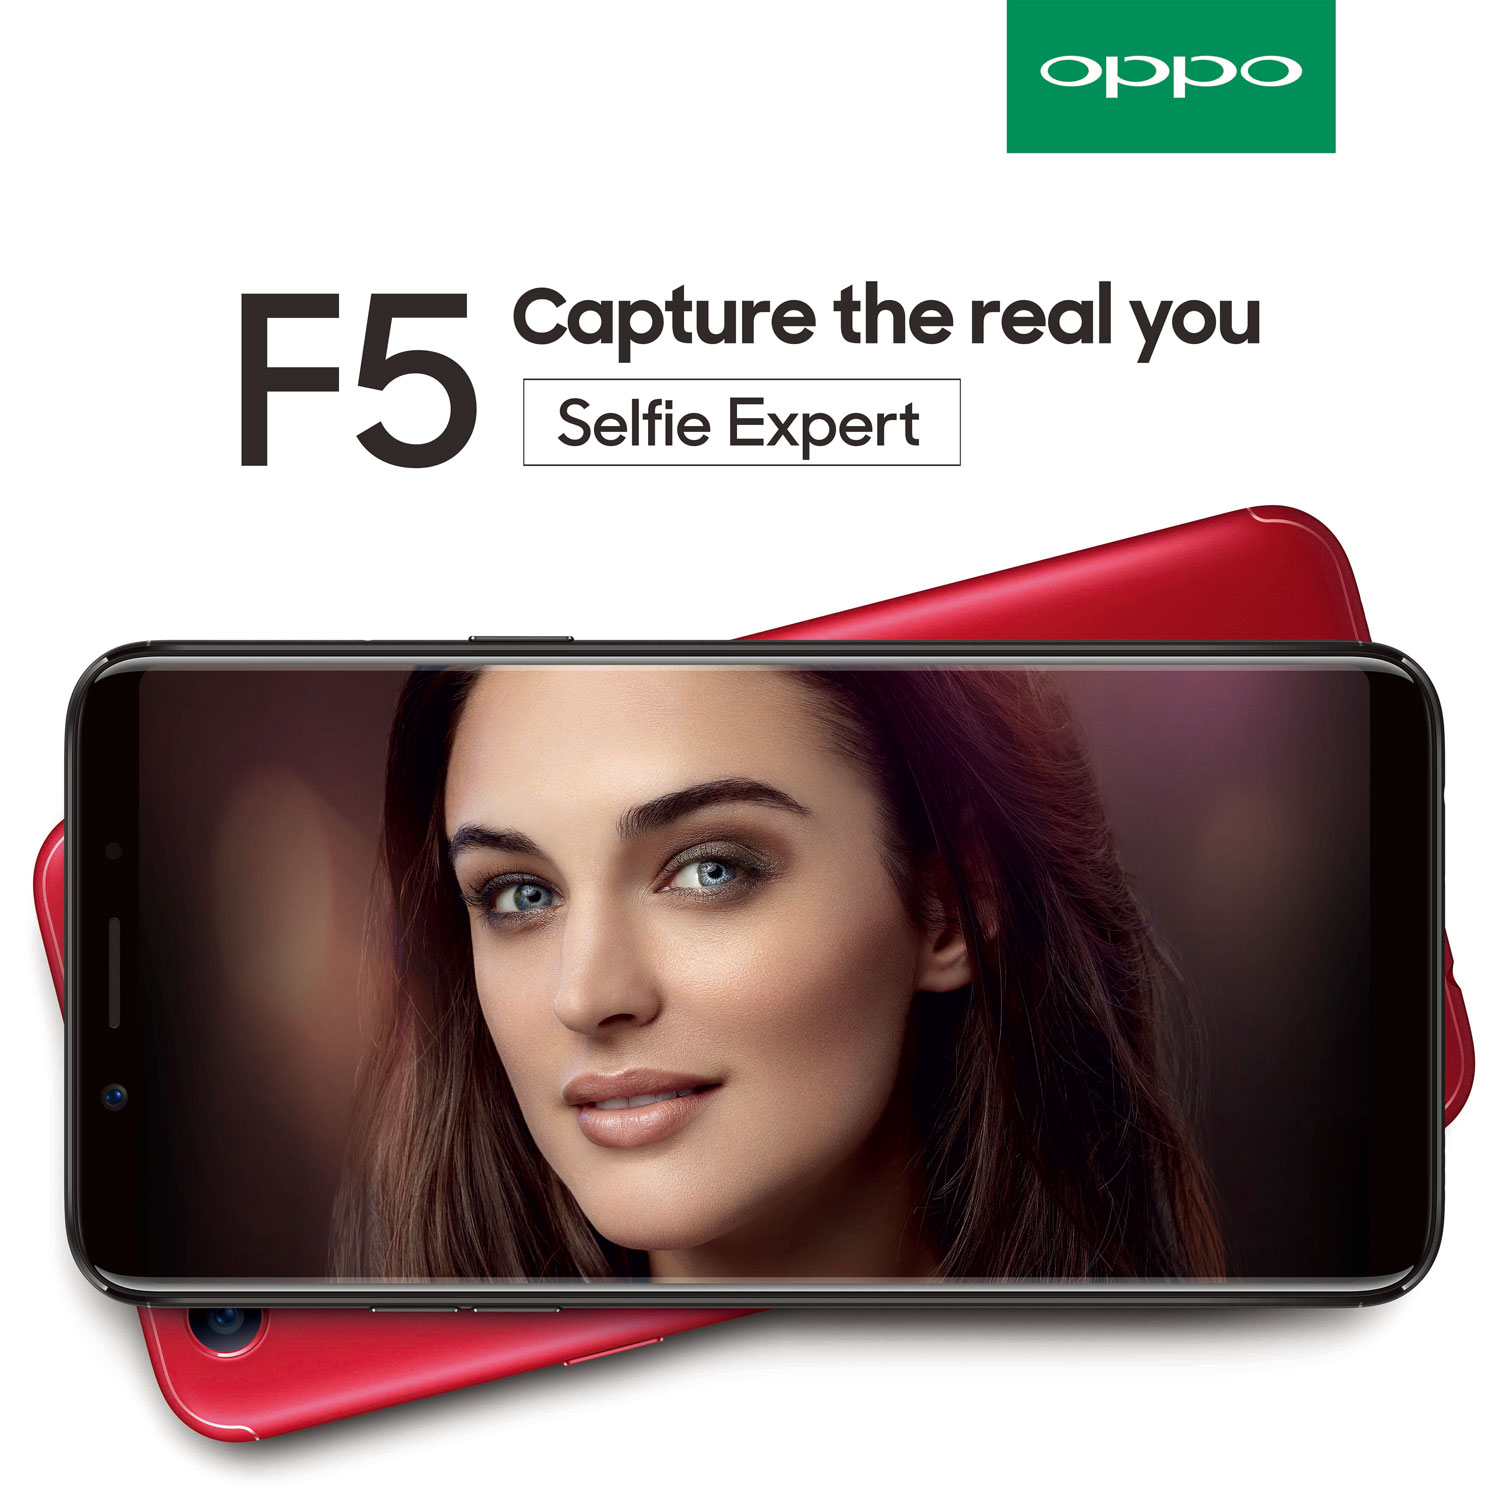 OPPO F5 Soon to Launch in India and Southeast Asia Market